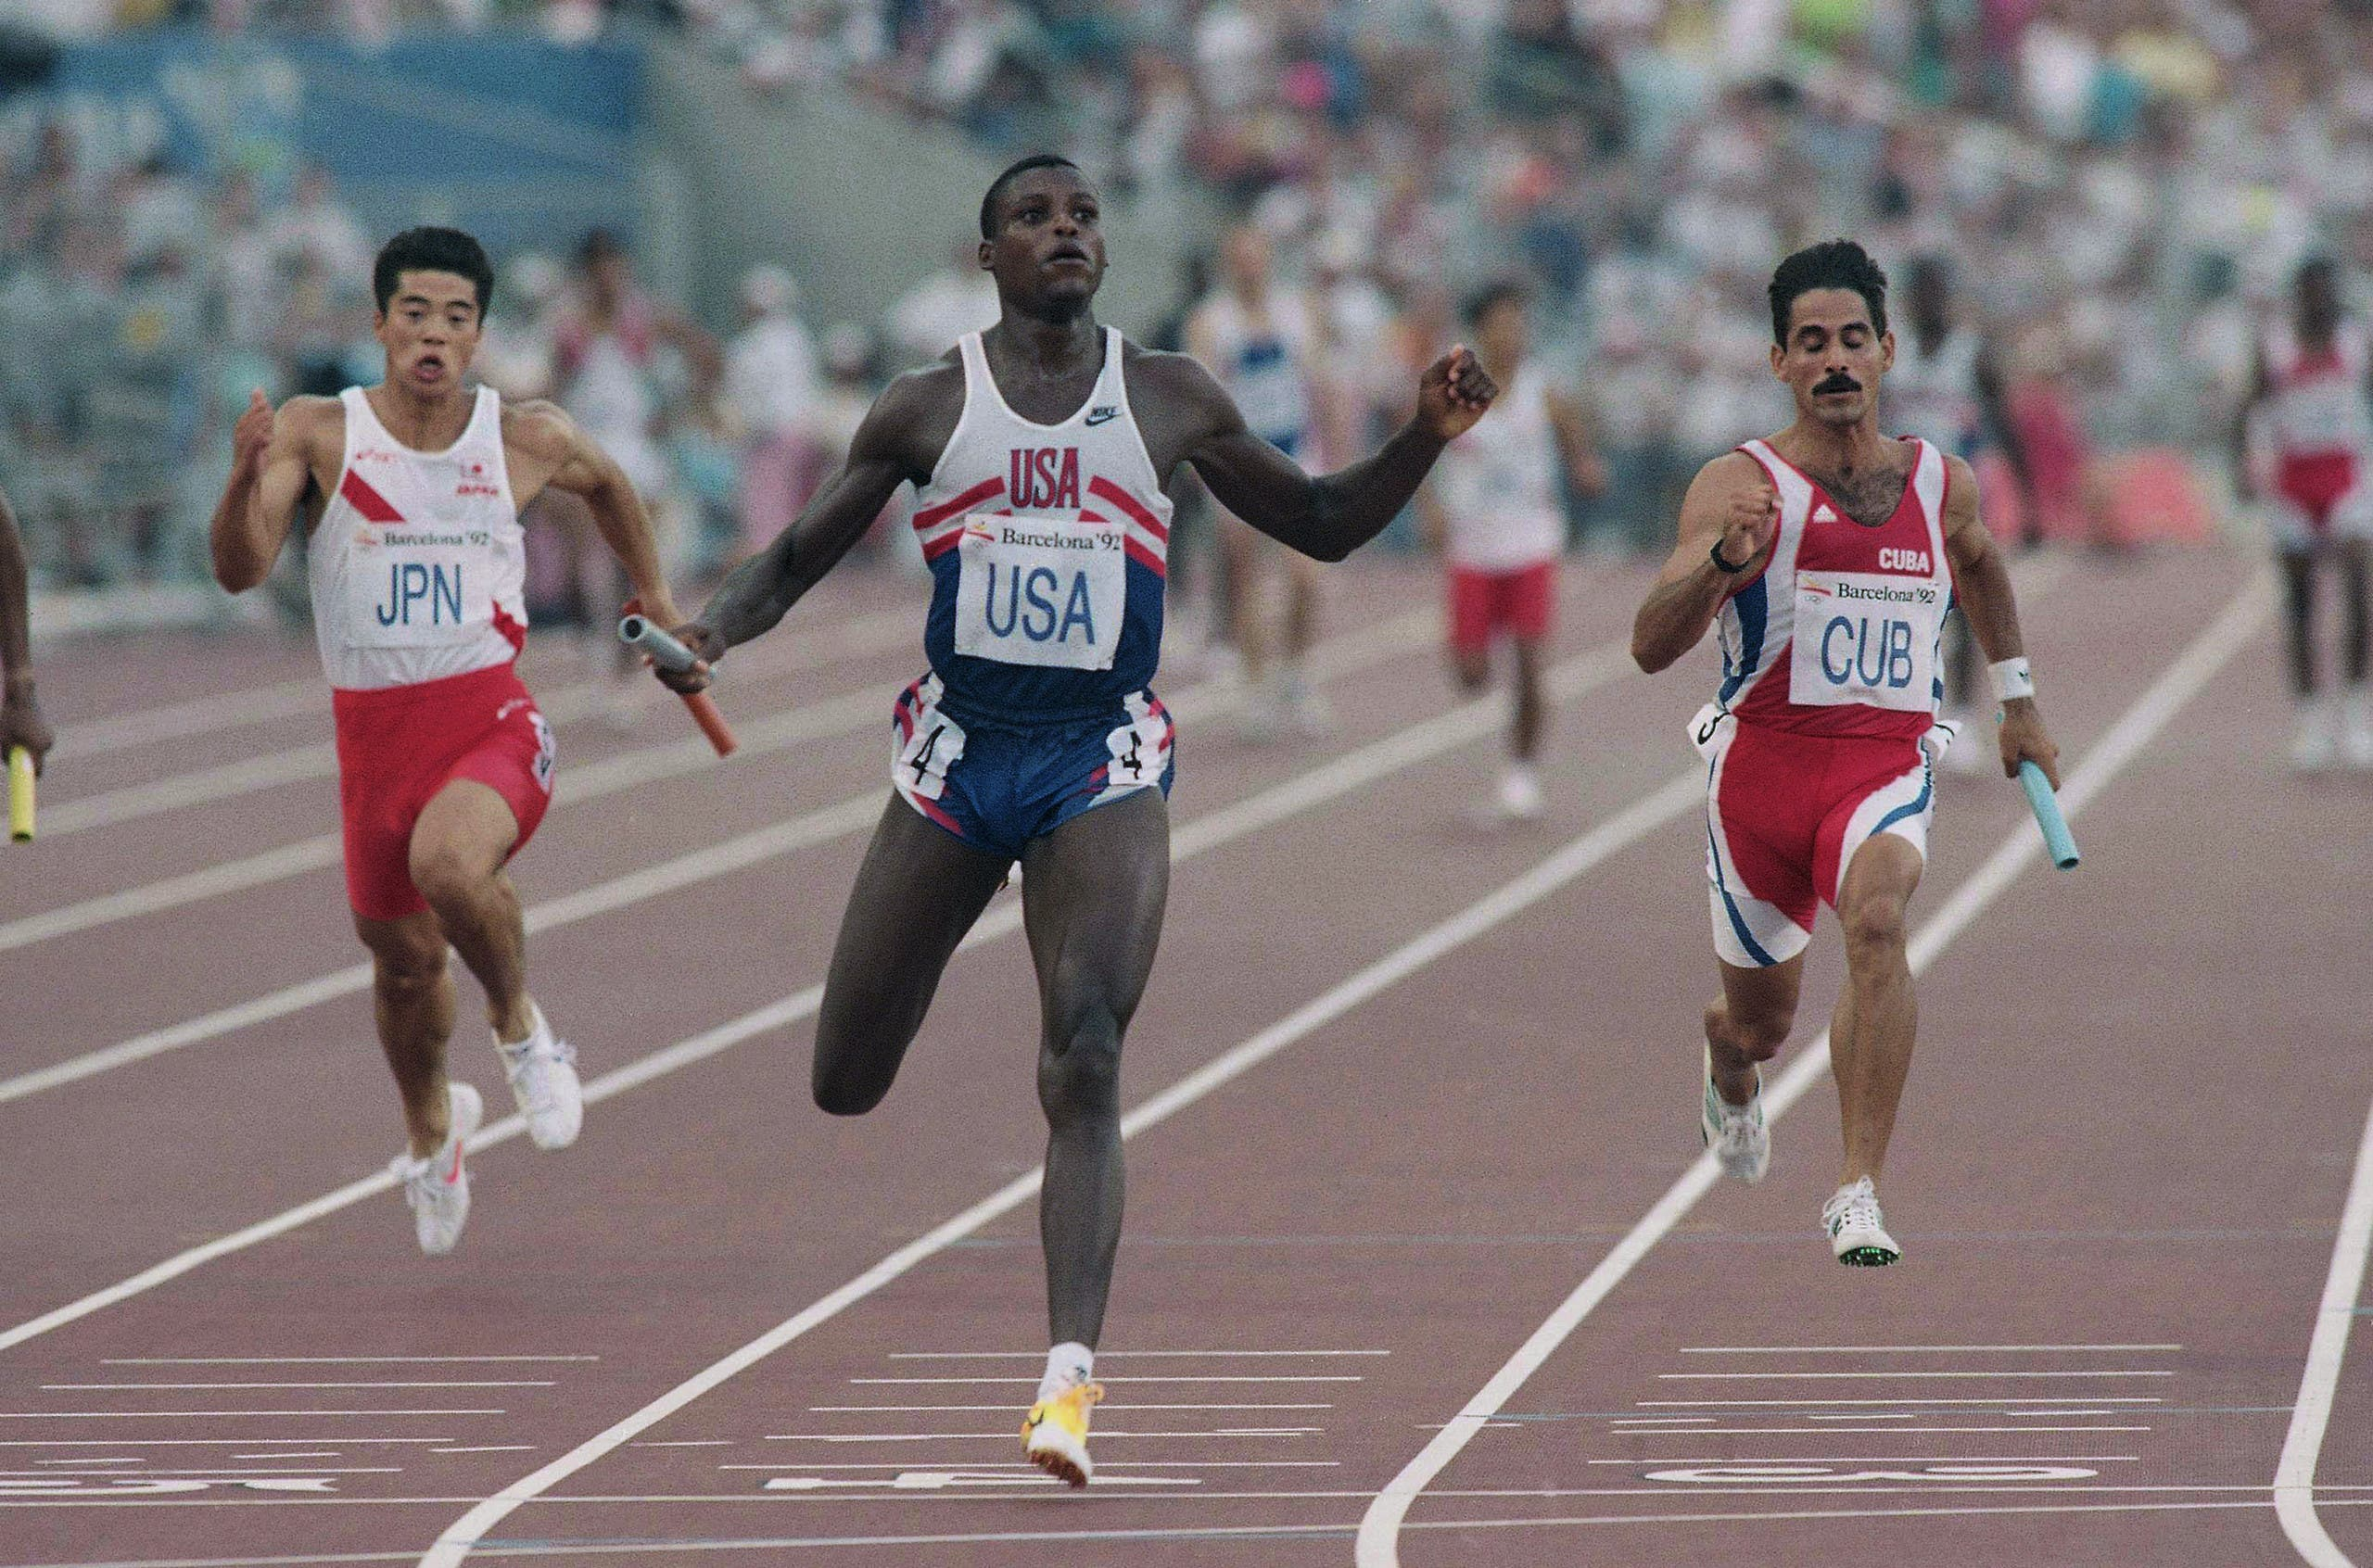 The USA's Carl Lewis, center, Houston, Tex., hits the line ahead of Japan's Tatsuo Sugimoto (left), and Cuba's Jorge Luis Aguilera Ruiz, in the semi-final of the Men's 4×100 meter relay at Barcelona's Olympic Stadium, Friday, August 7, 1992. Each team qualified for the final with Lewis finishing first, Ruiz second and Sugimoto fourth. (AP)